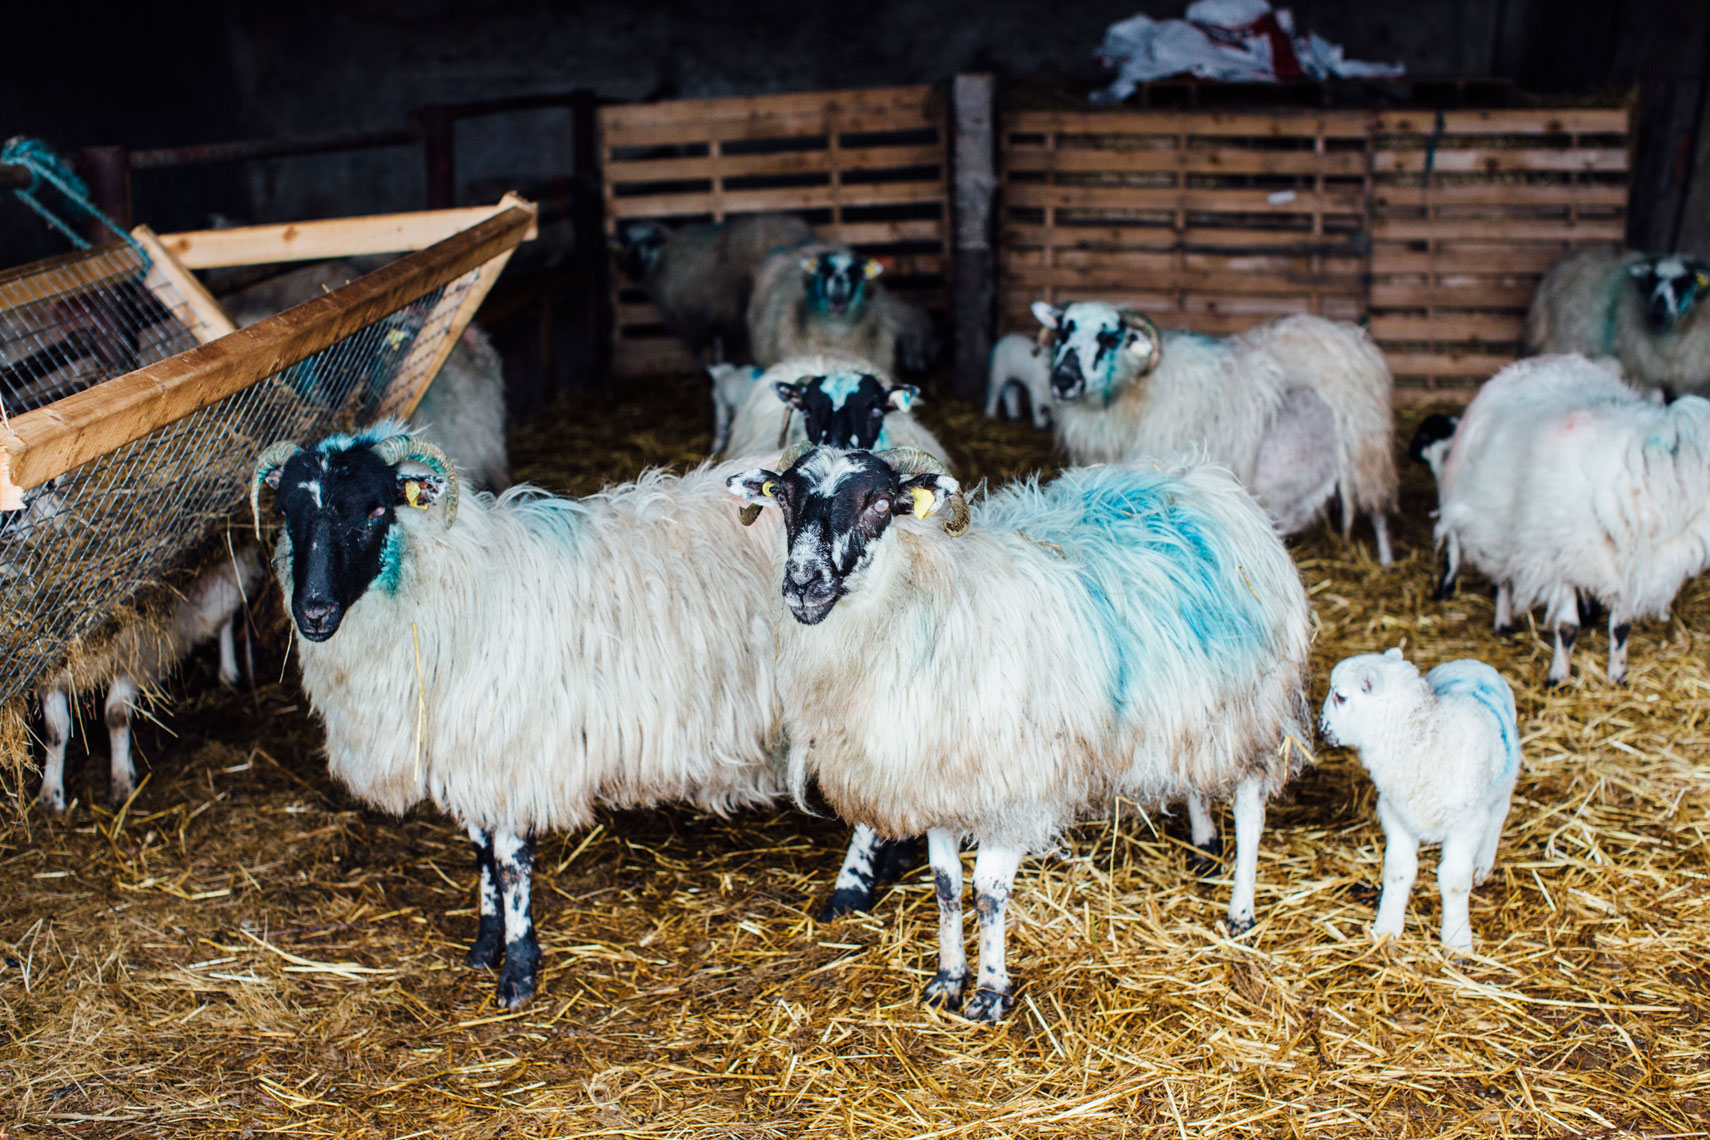 scottish blackface sheep and lamb  gather  for feeding